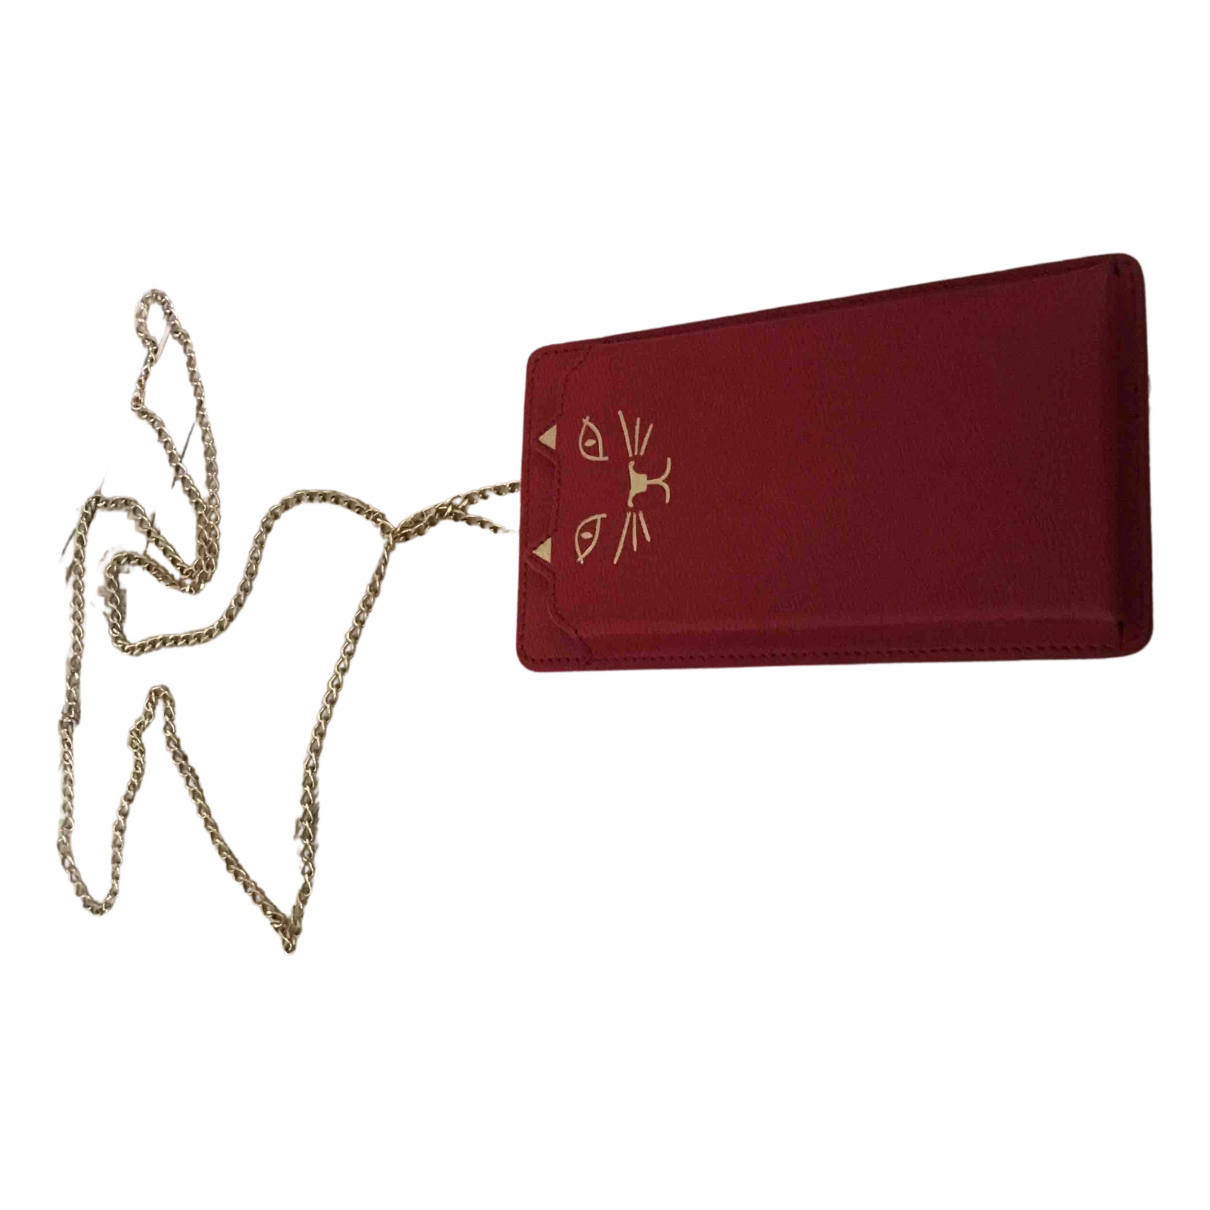 Charlotte Olympia N Leather Purses, wallet & cases for Women N